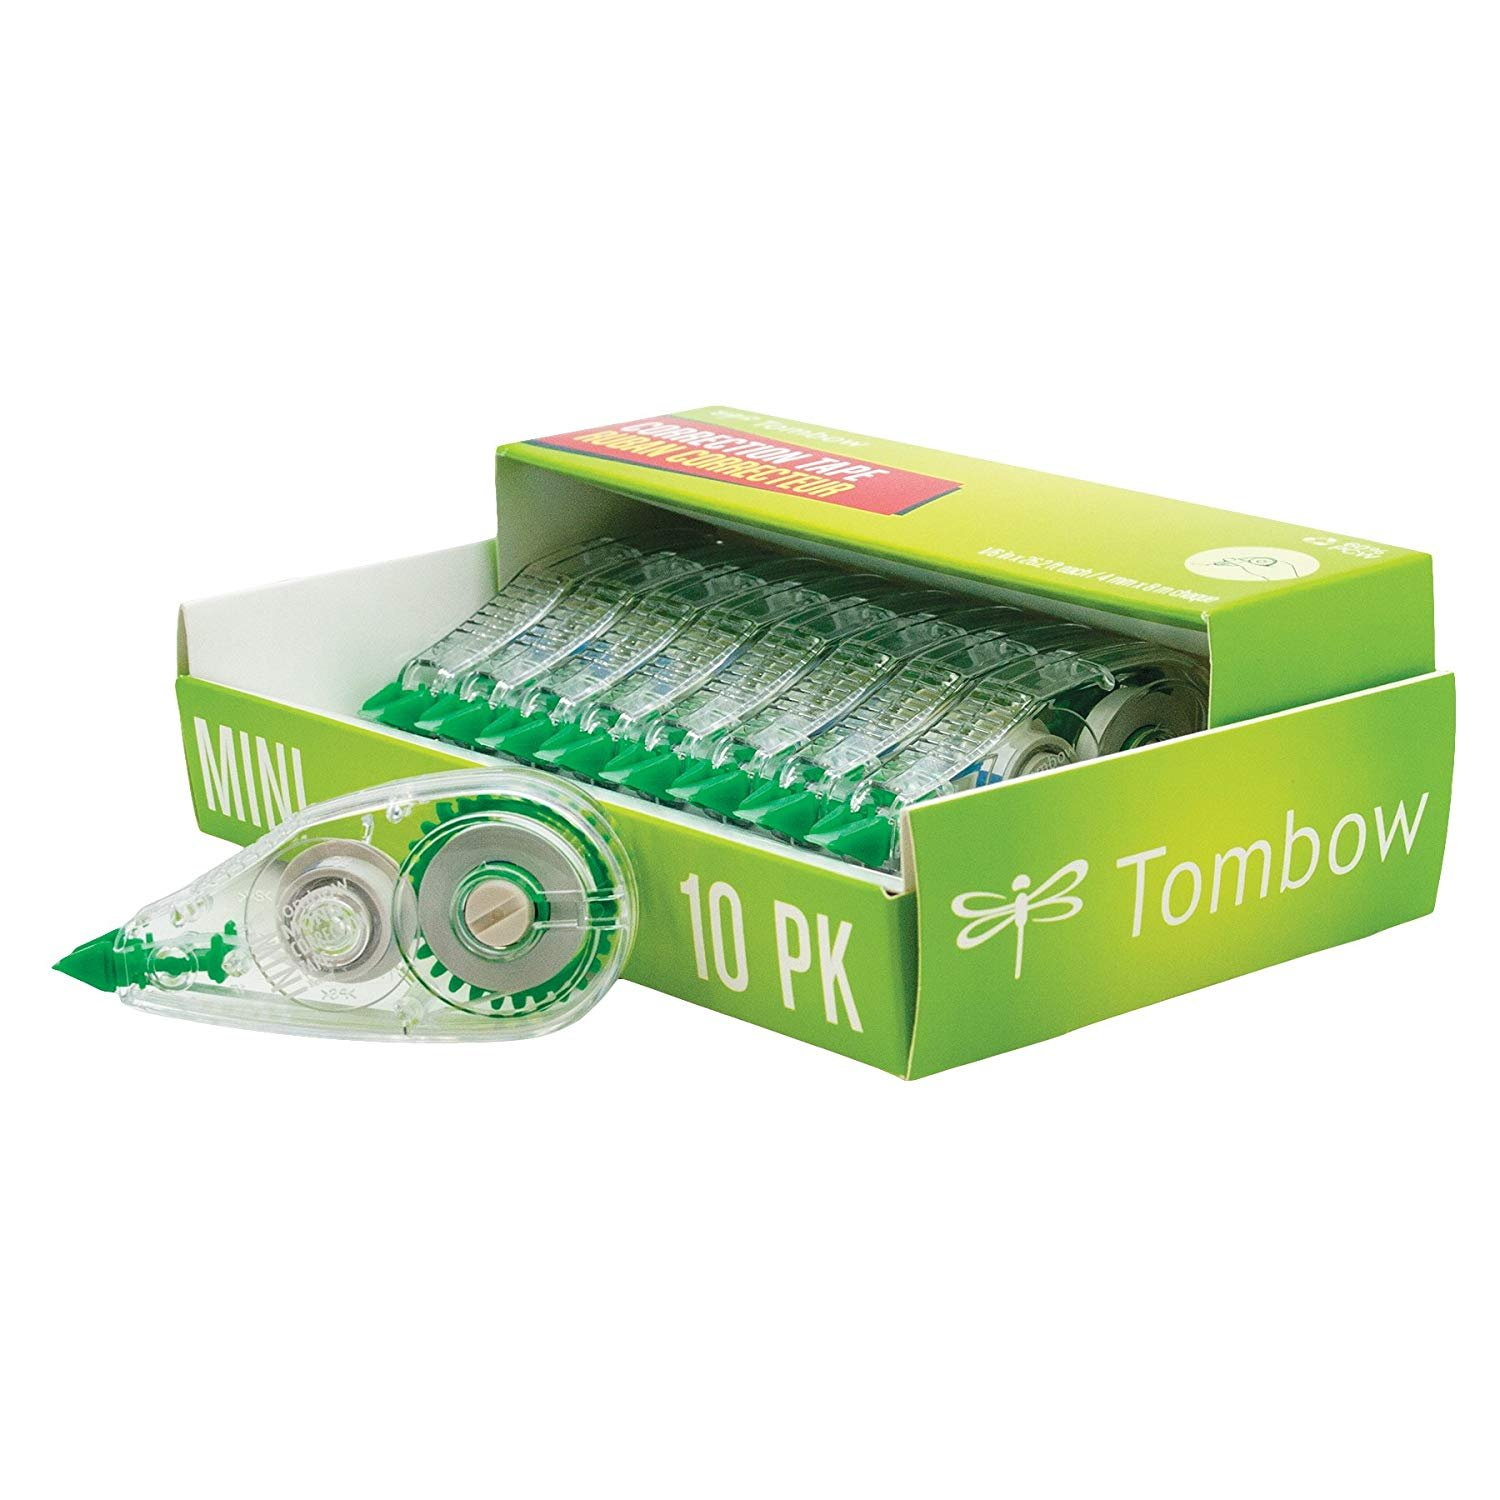 Tombow 68722 MONO Mini Correction Tape, 10-Pack. Easy to Use Applicator for Instant Corrections (3-Pack)